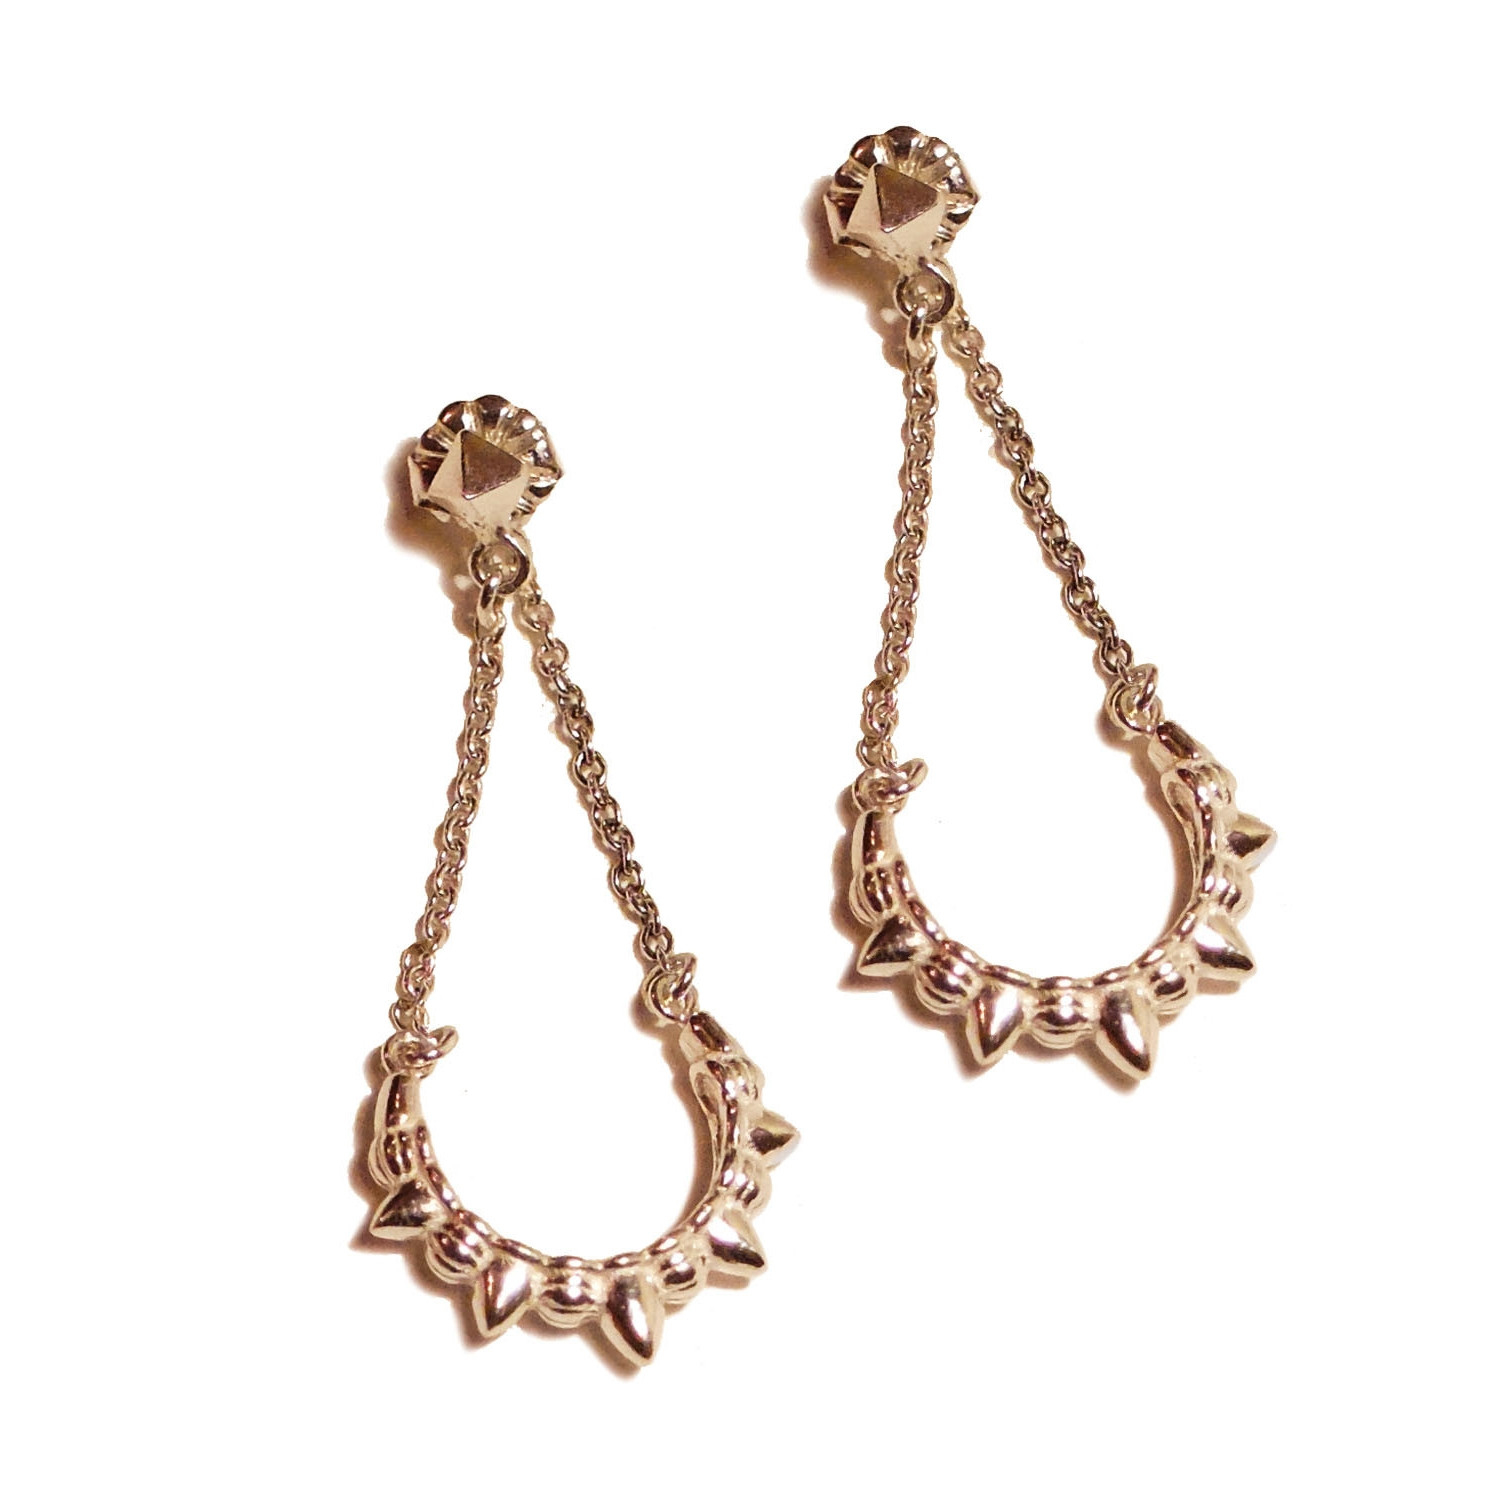 Pamela love gold tribal chain earrings lyst for Pamela love jewelry designer